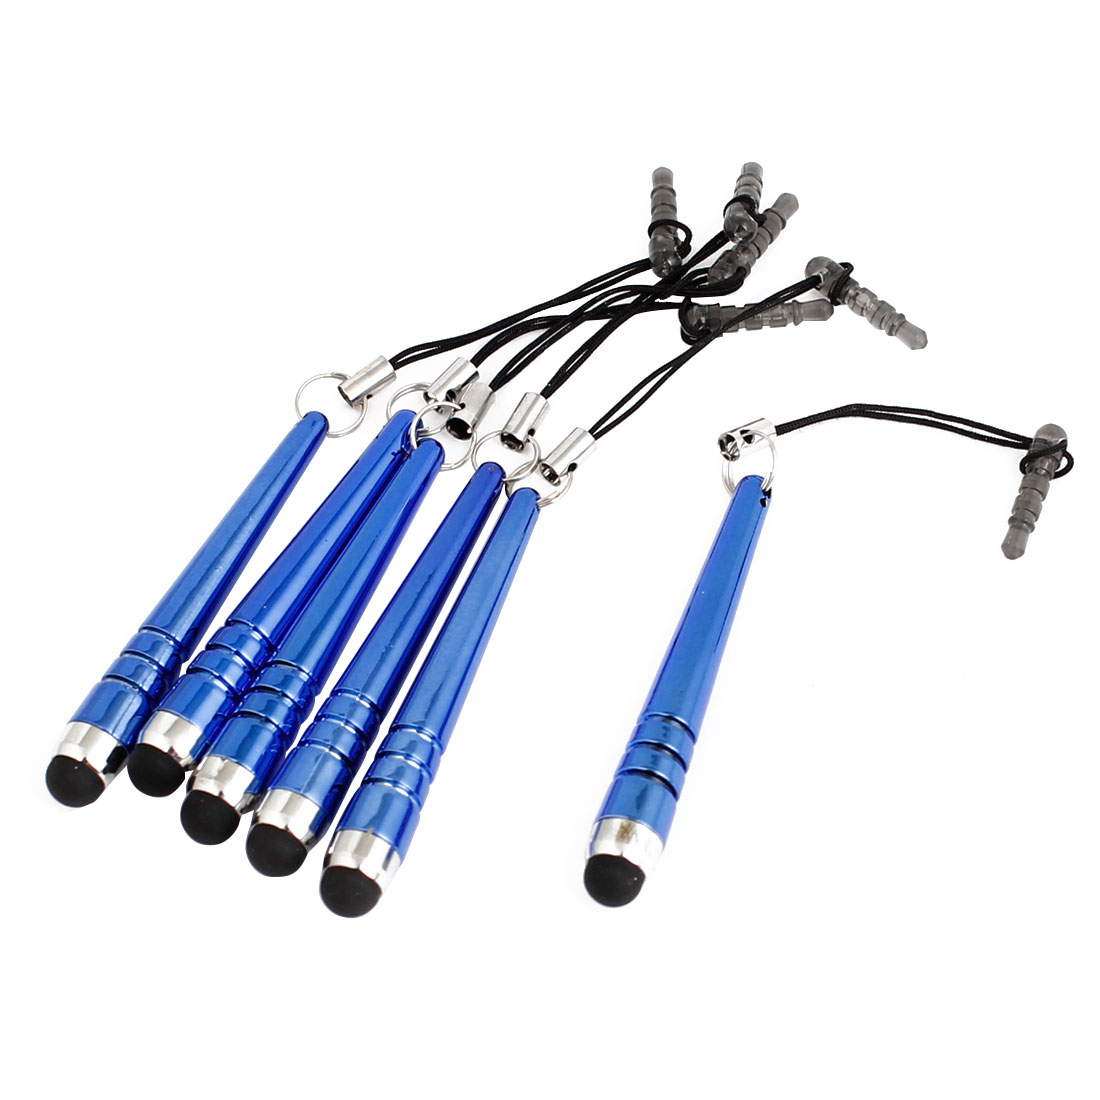 6pcs Anti Dust Capacitive Touch Screen Stylus Pen Blue for Cell Phone